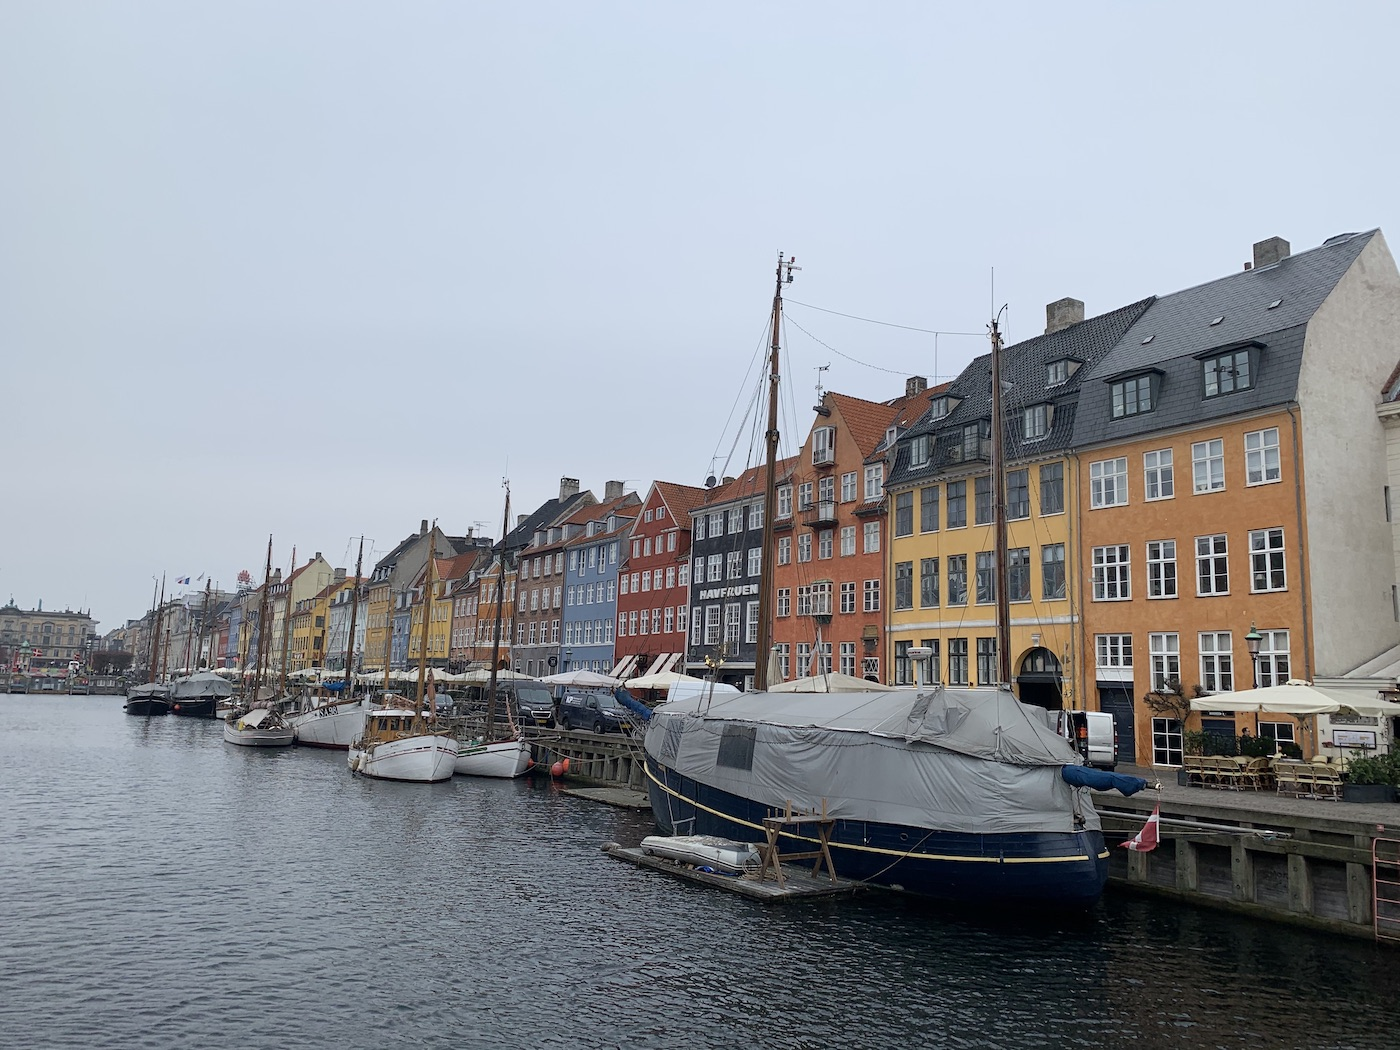 View of Nyhavn in Copenhagen